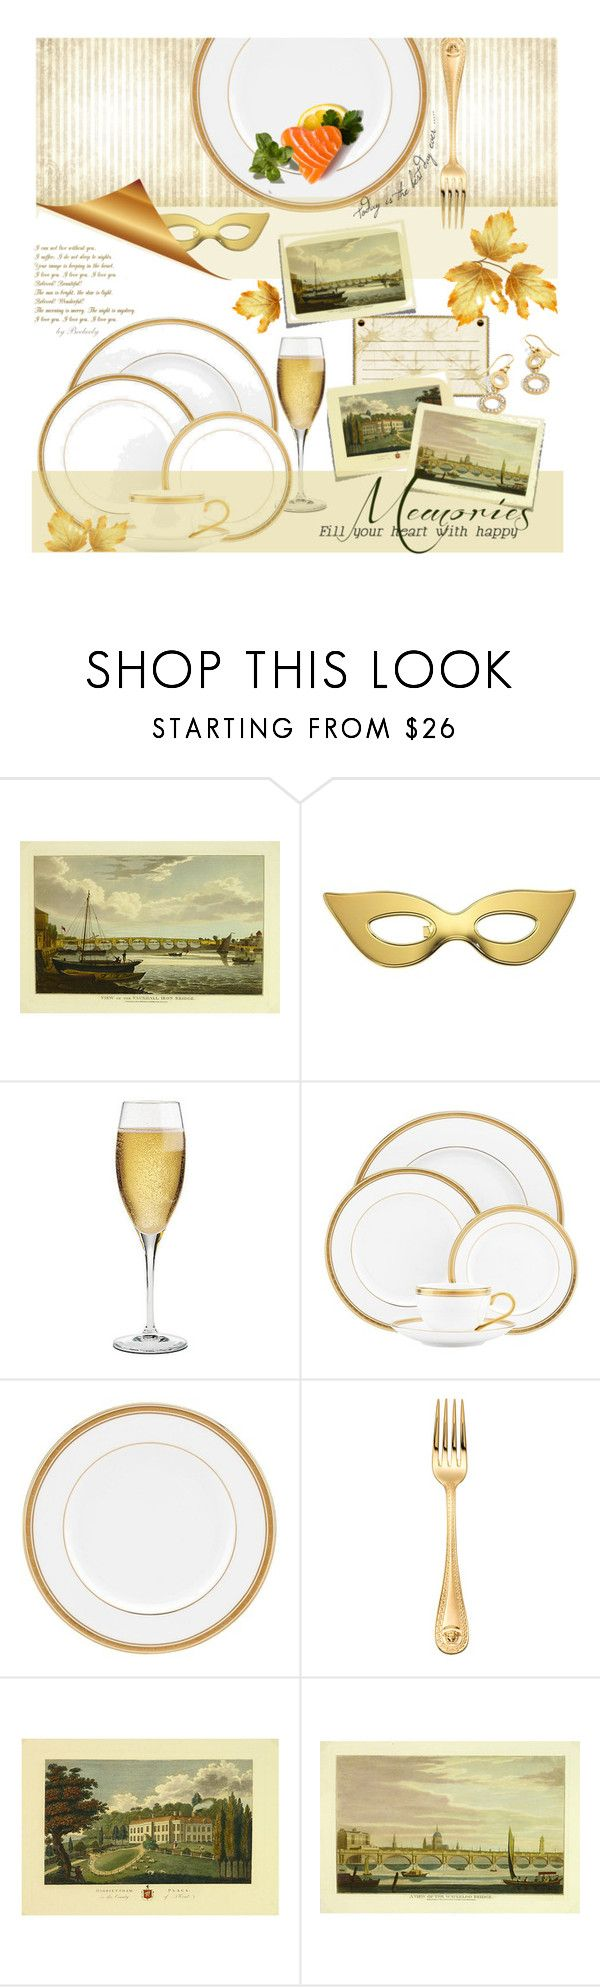 """""""Memories"""" by beebeely-look ❤ liked on Polyvore featuring interior, interiors, interior design, home, home decor, interior decorating, Kate Spade, Riedel, Versace and kitchen"""